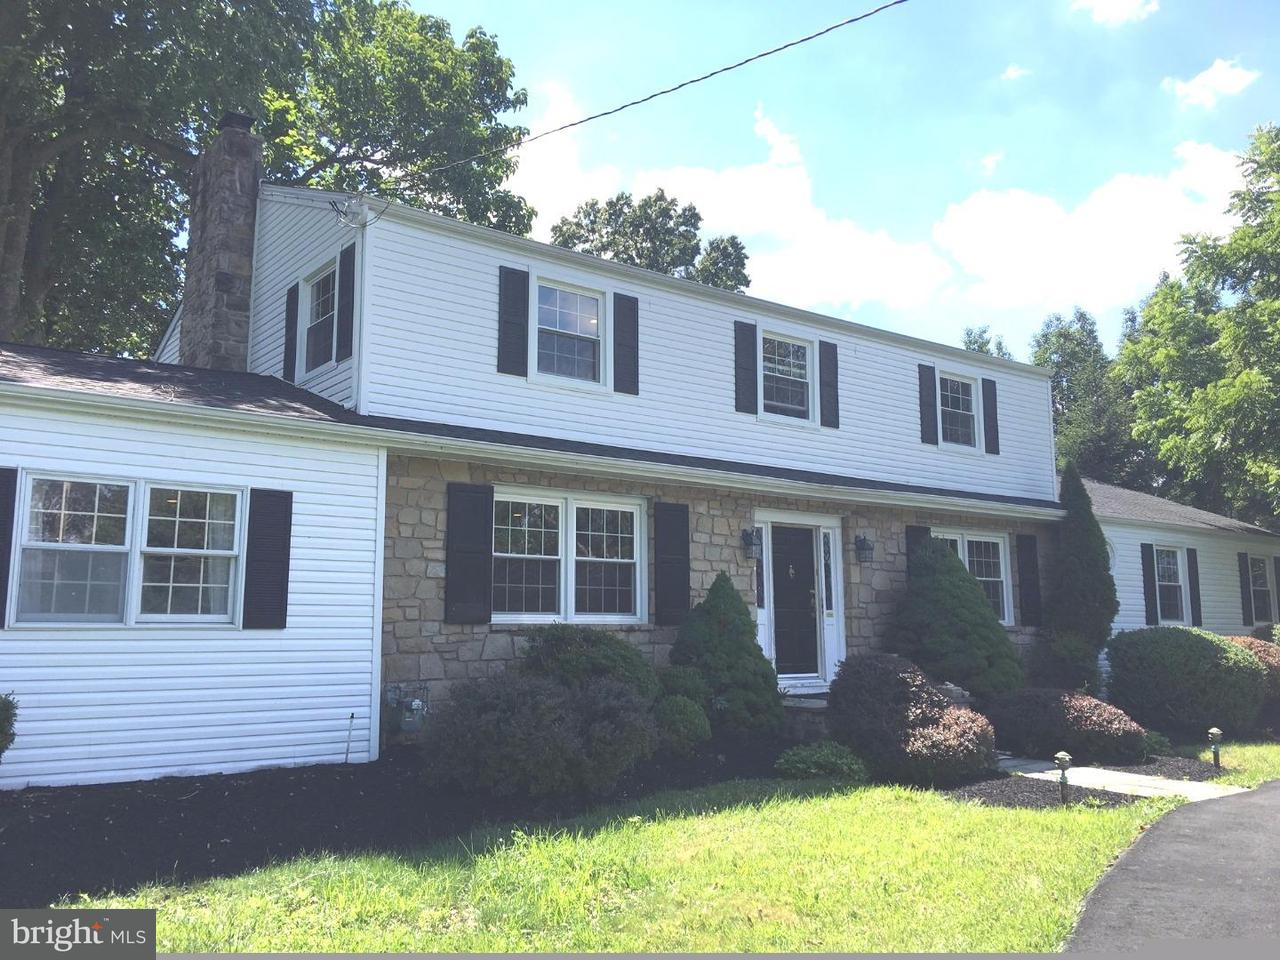 Single Family Home for Rent at 1801 YARDLEY Road Yardley, Pennsylvania 19067 United States